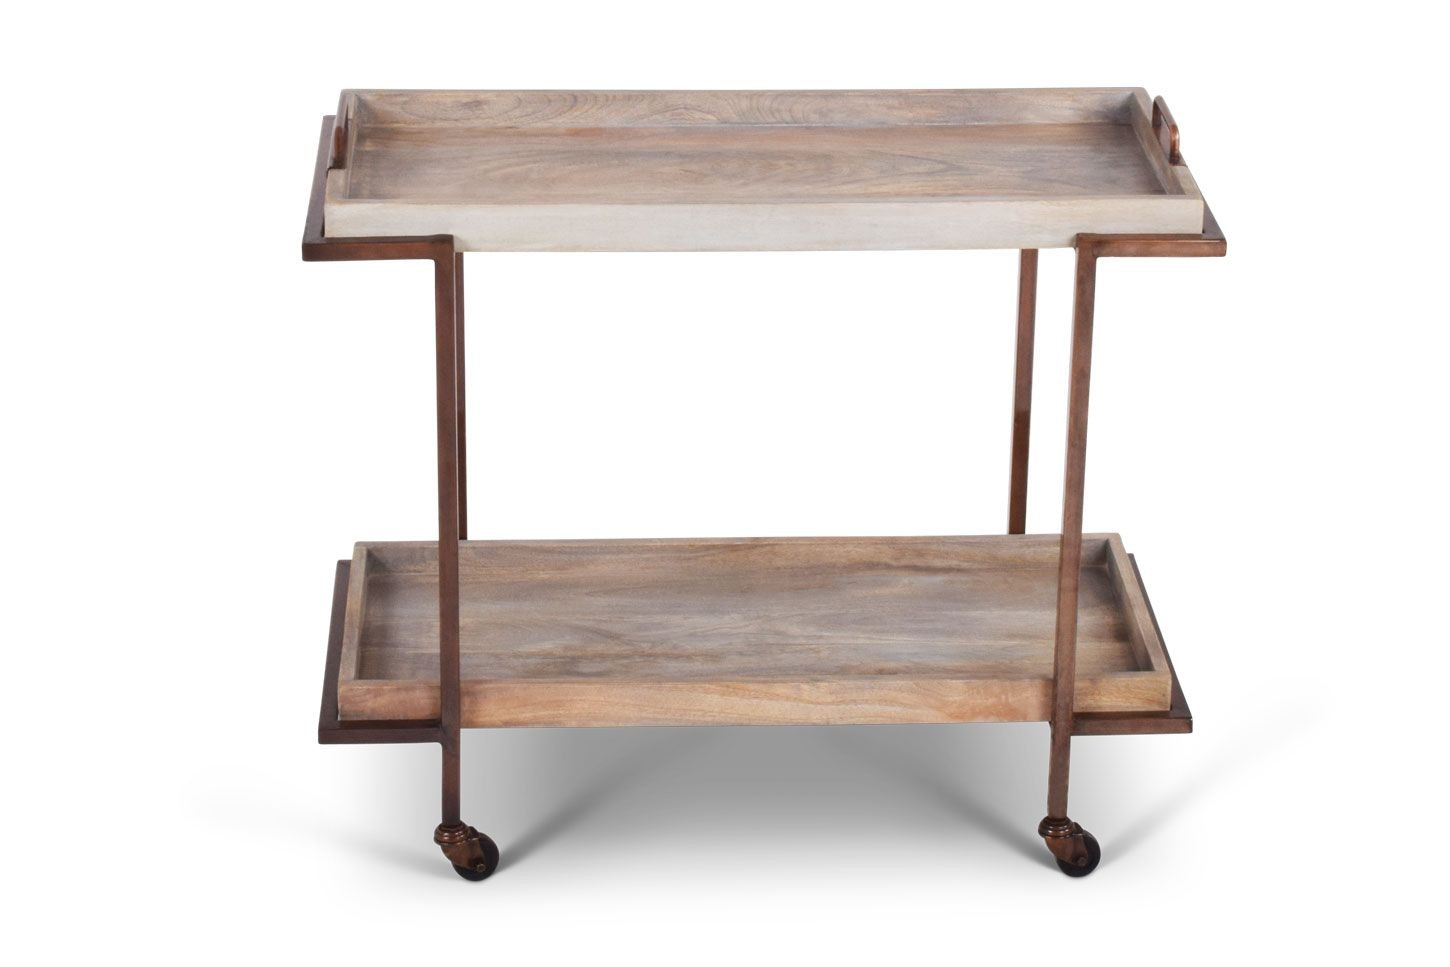 steve silver dylan sofa table beds for cheap furniture carol house maryland heights conway cart cw360c